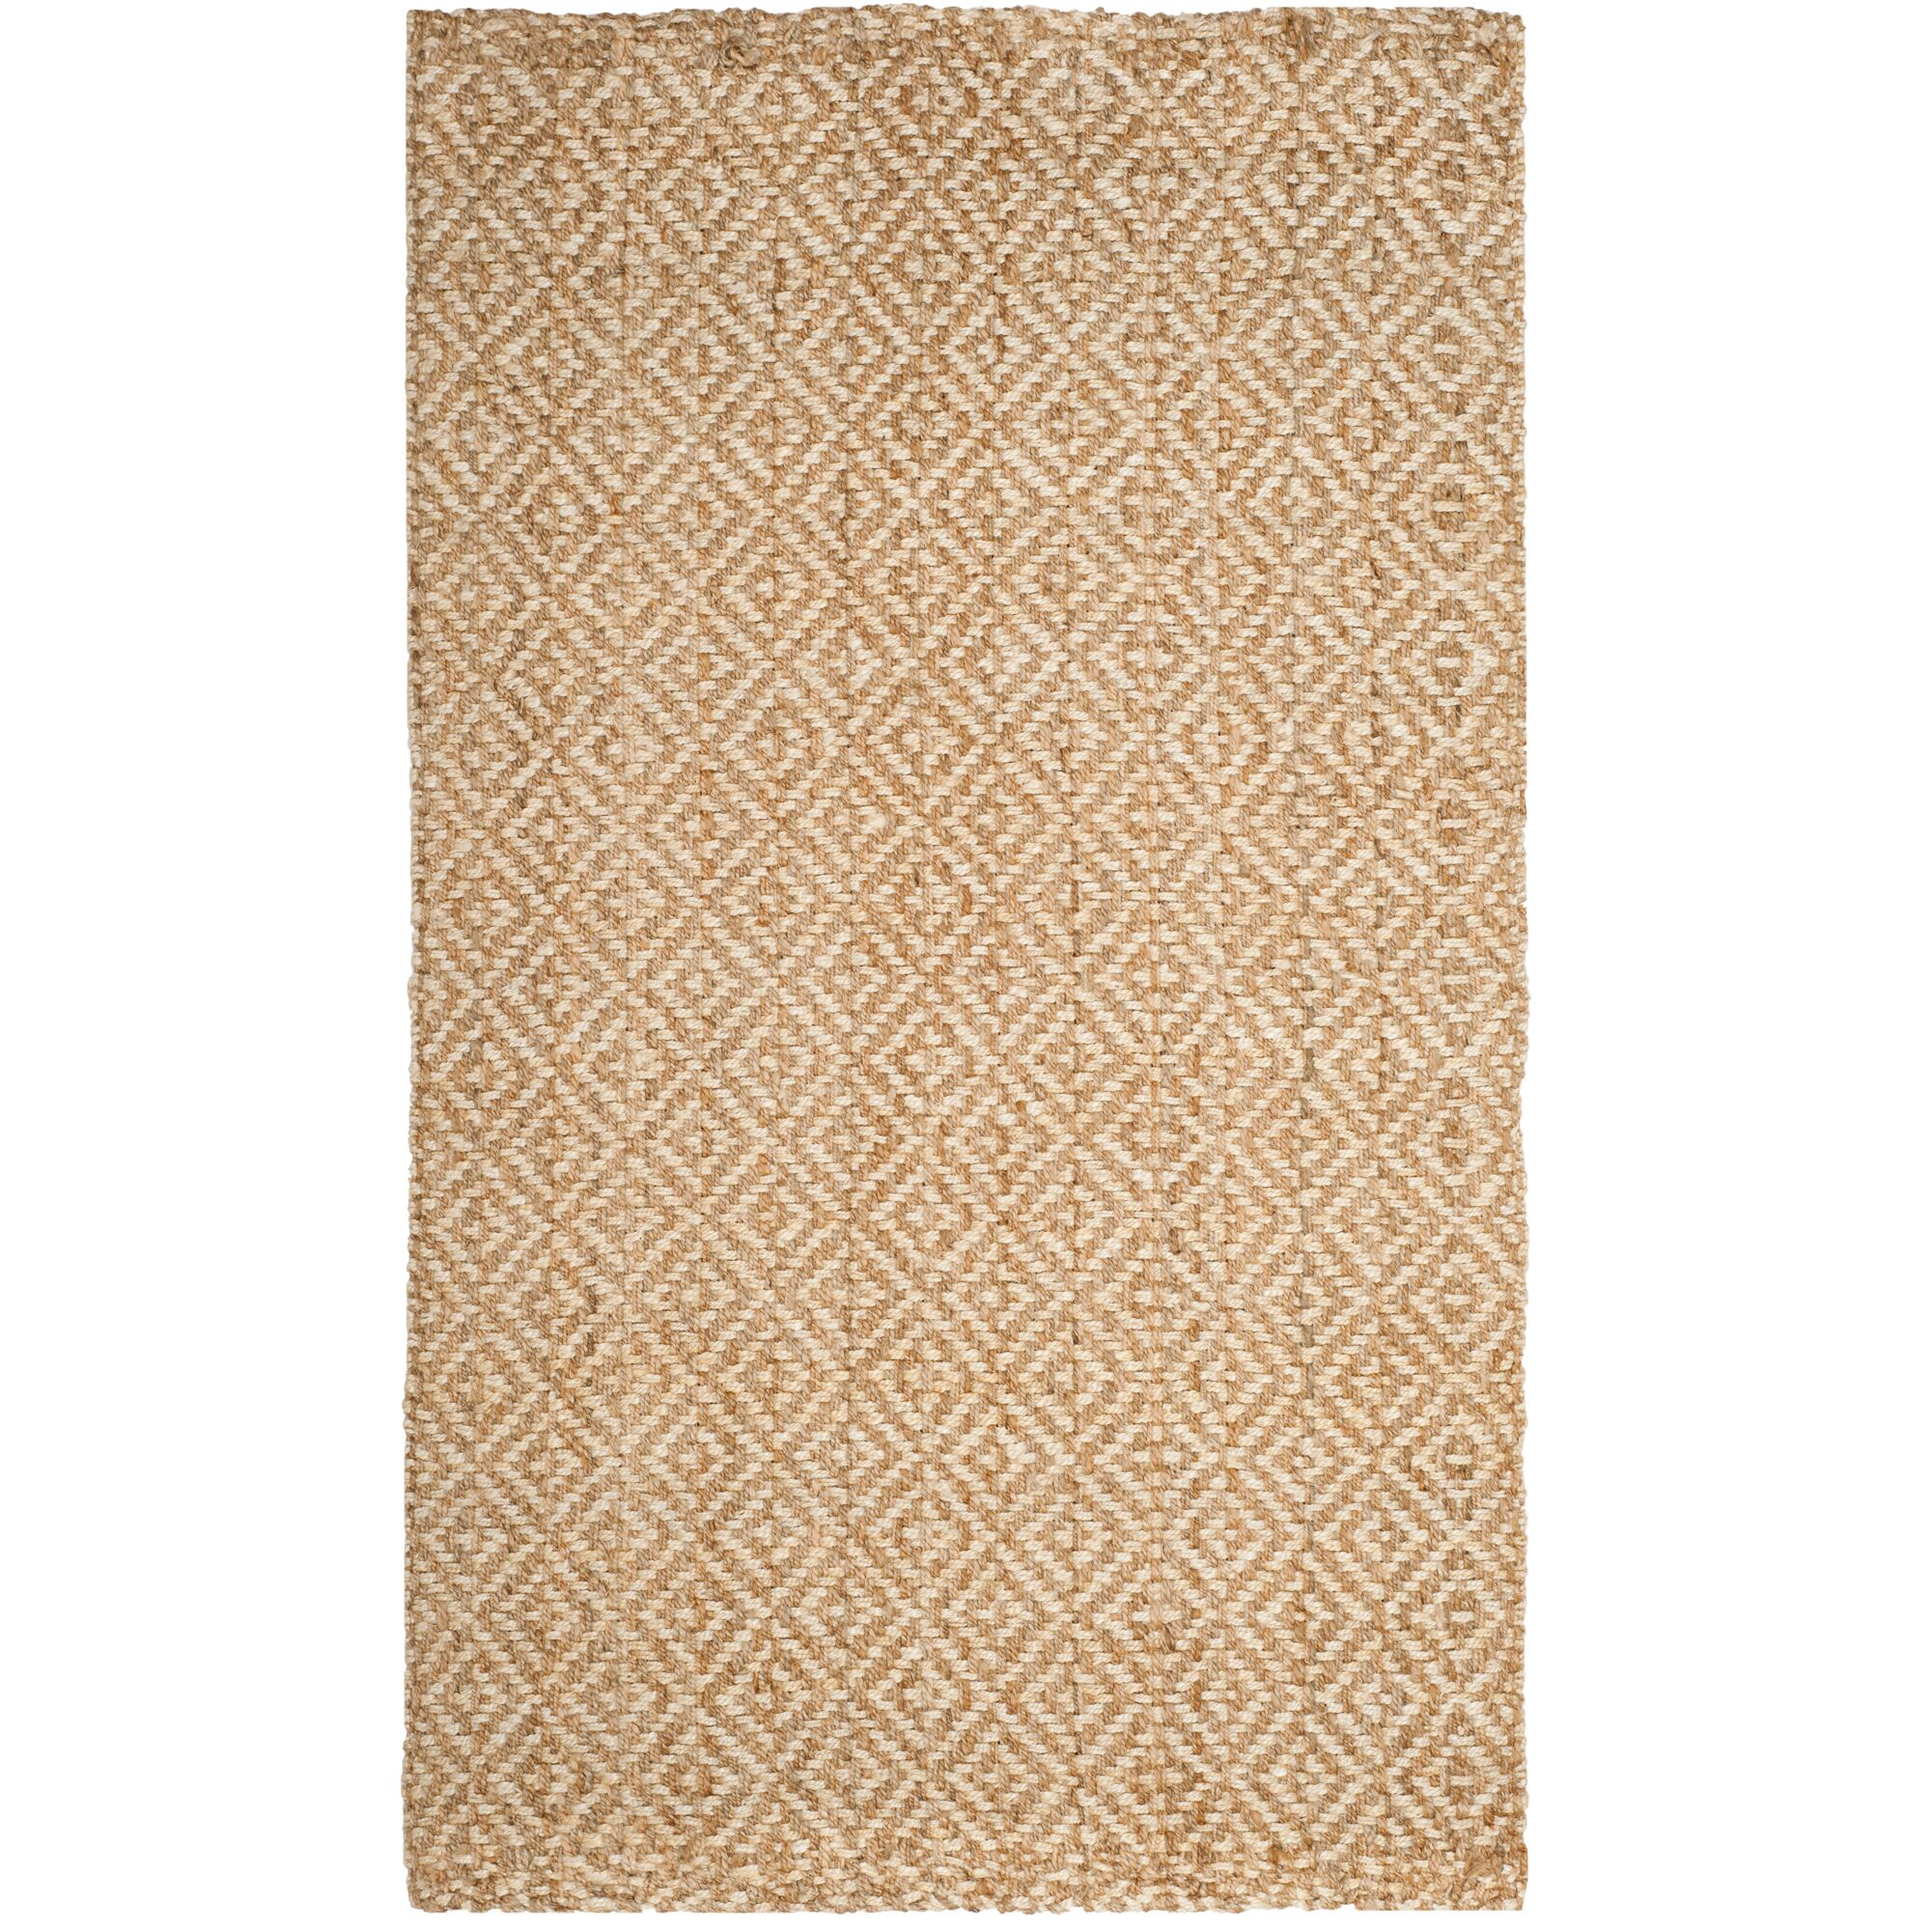 Miliou Hand-Woven Ivory/Natural Area Rug Rug Size: Rectangle 5' x 8'